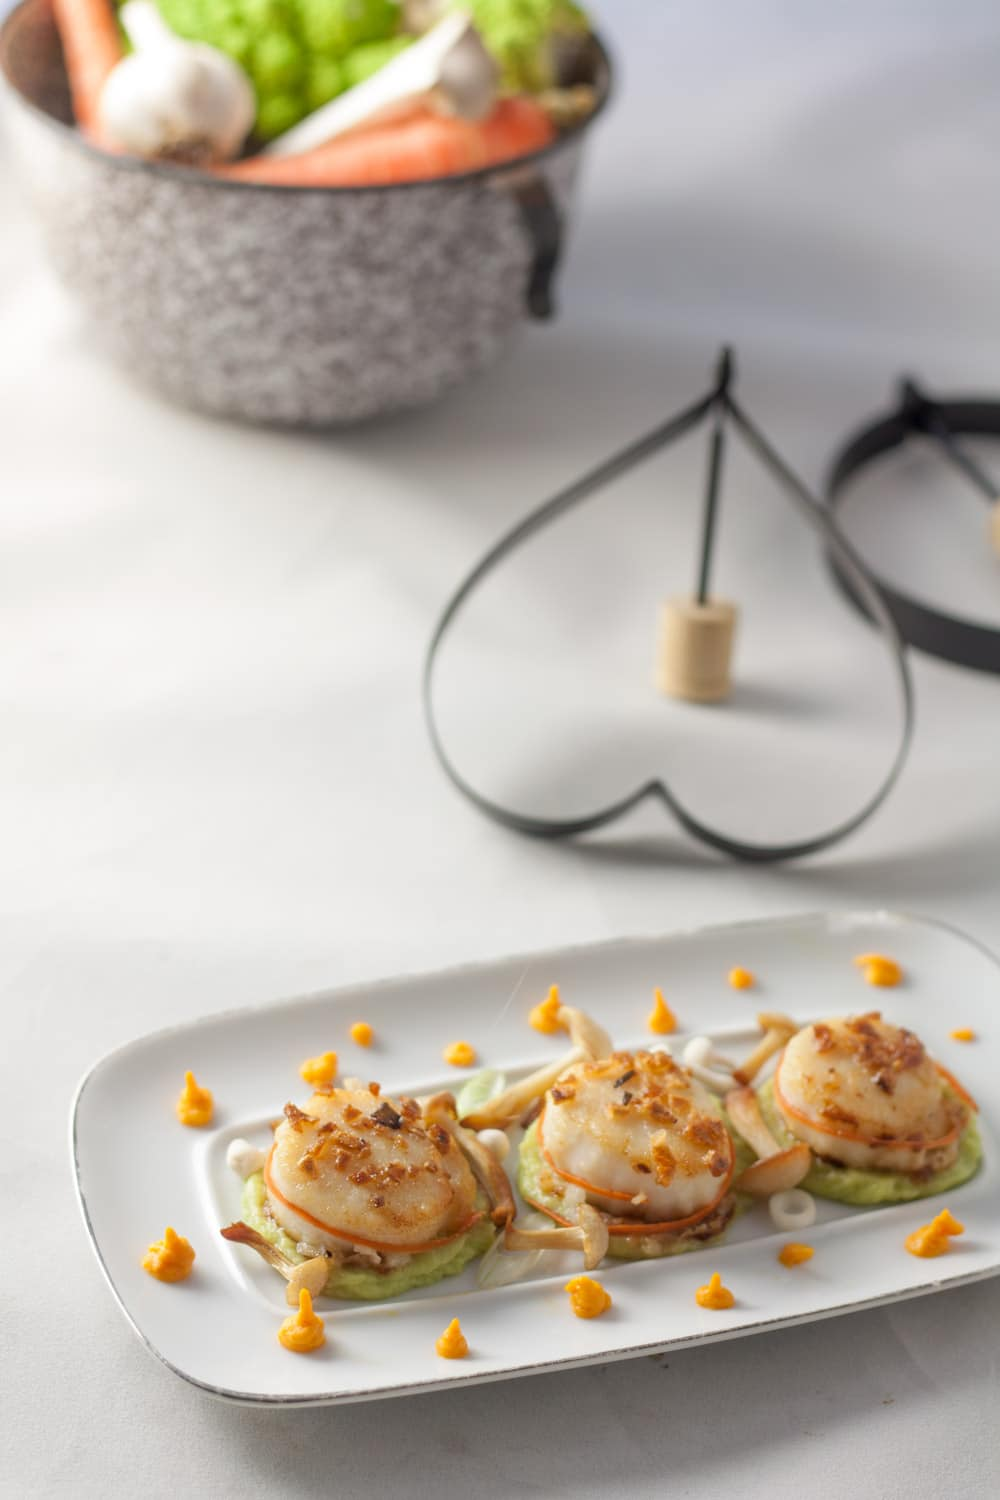 garlic seared scallops on white plate with romanesco and carrot puree